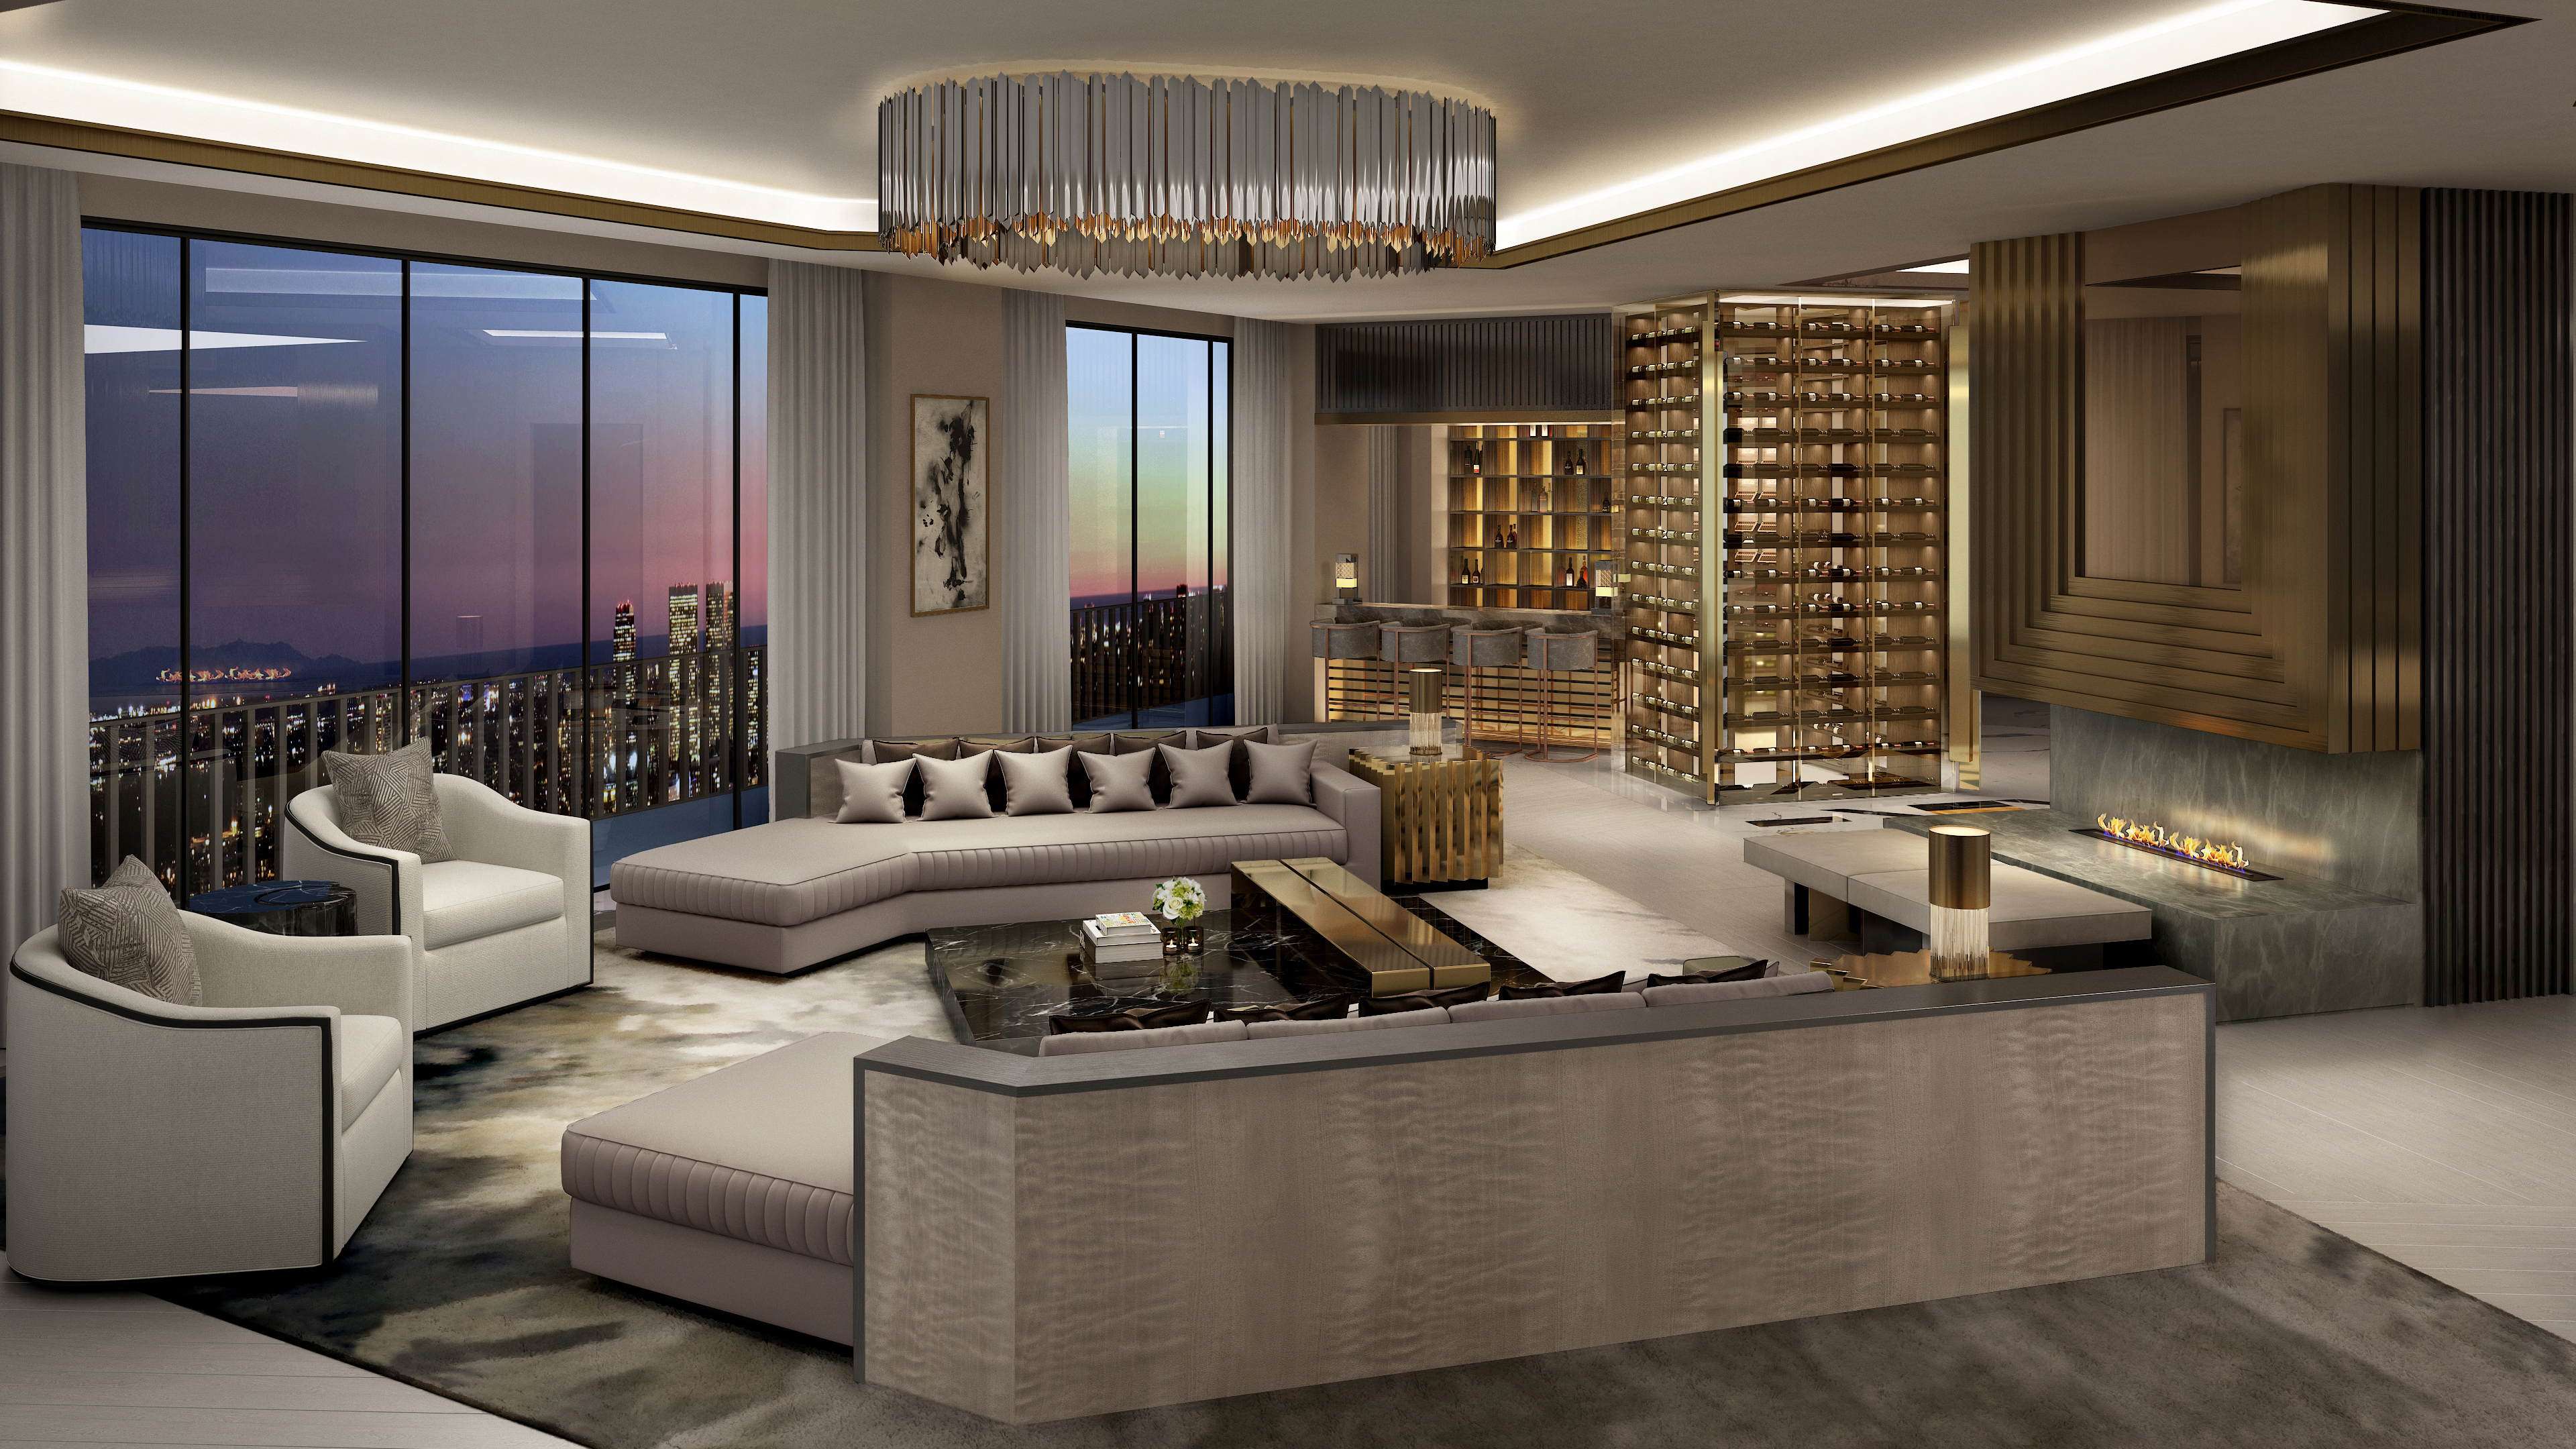 Sierra Towers Top Floor Up For Sale With A 58 Million